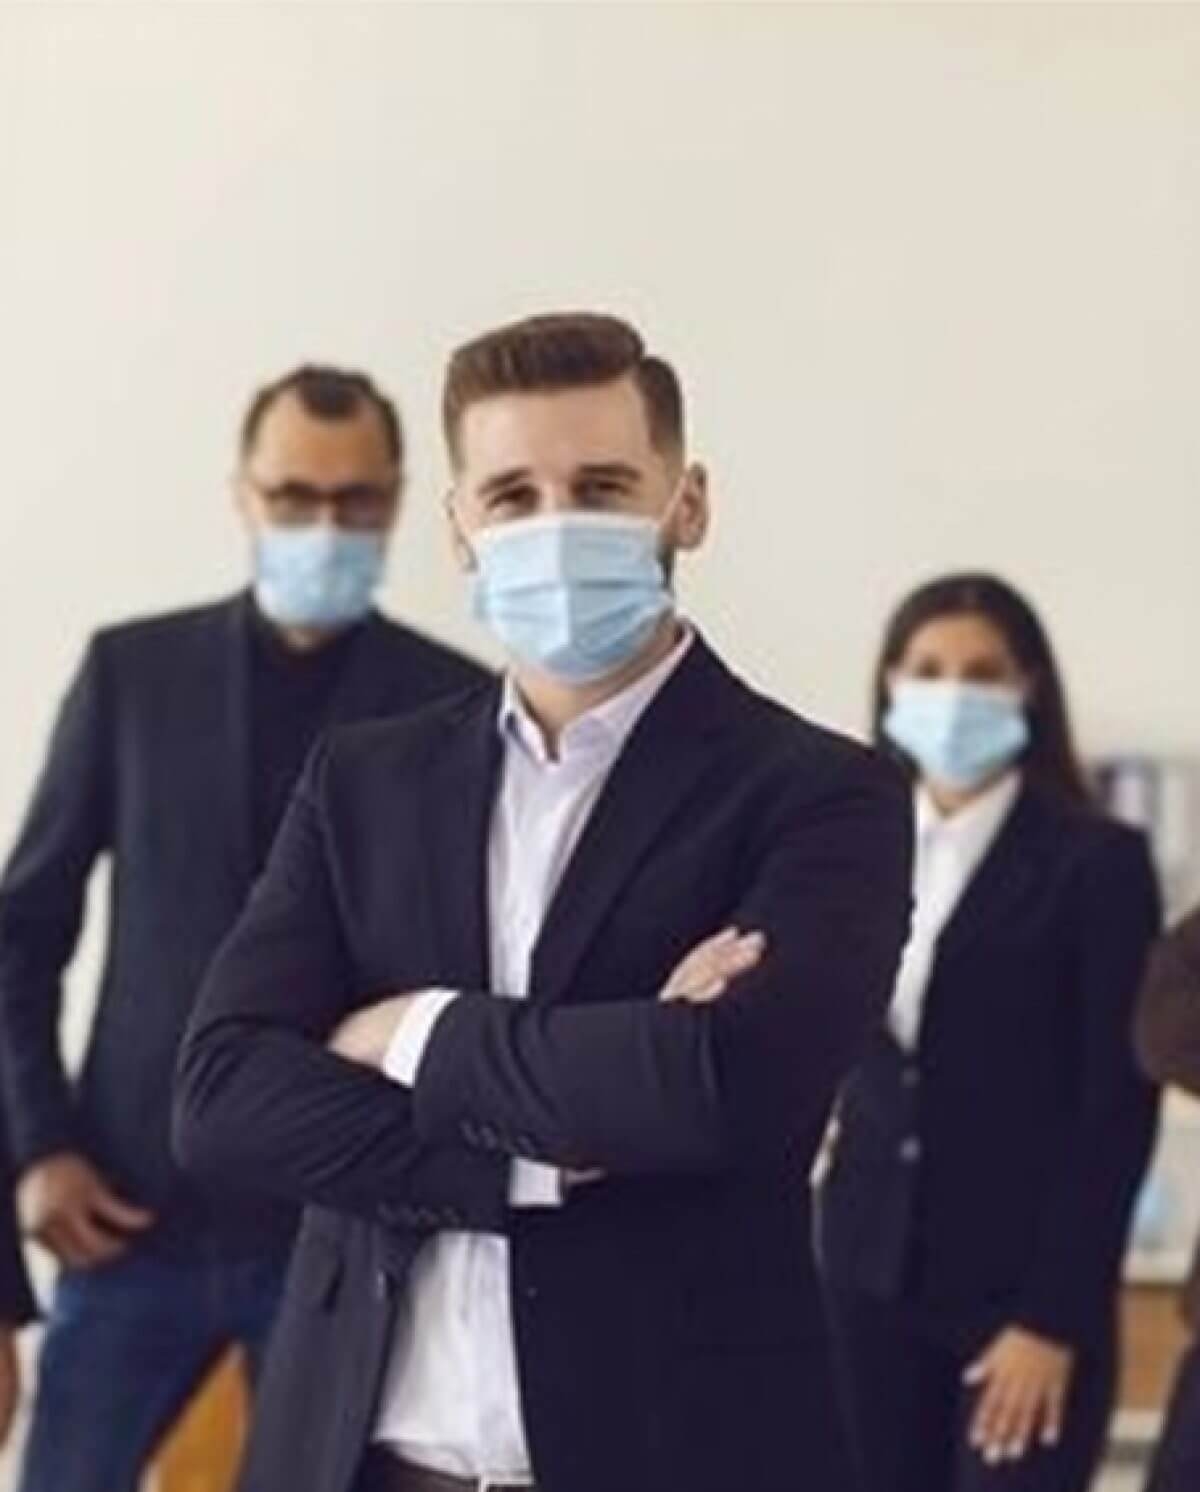 Social distancing solutions & hygiene products for the workplace